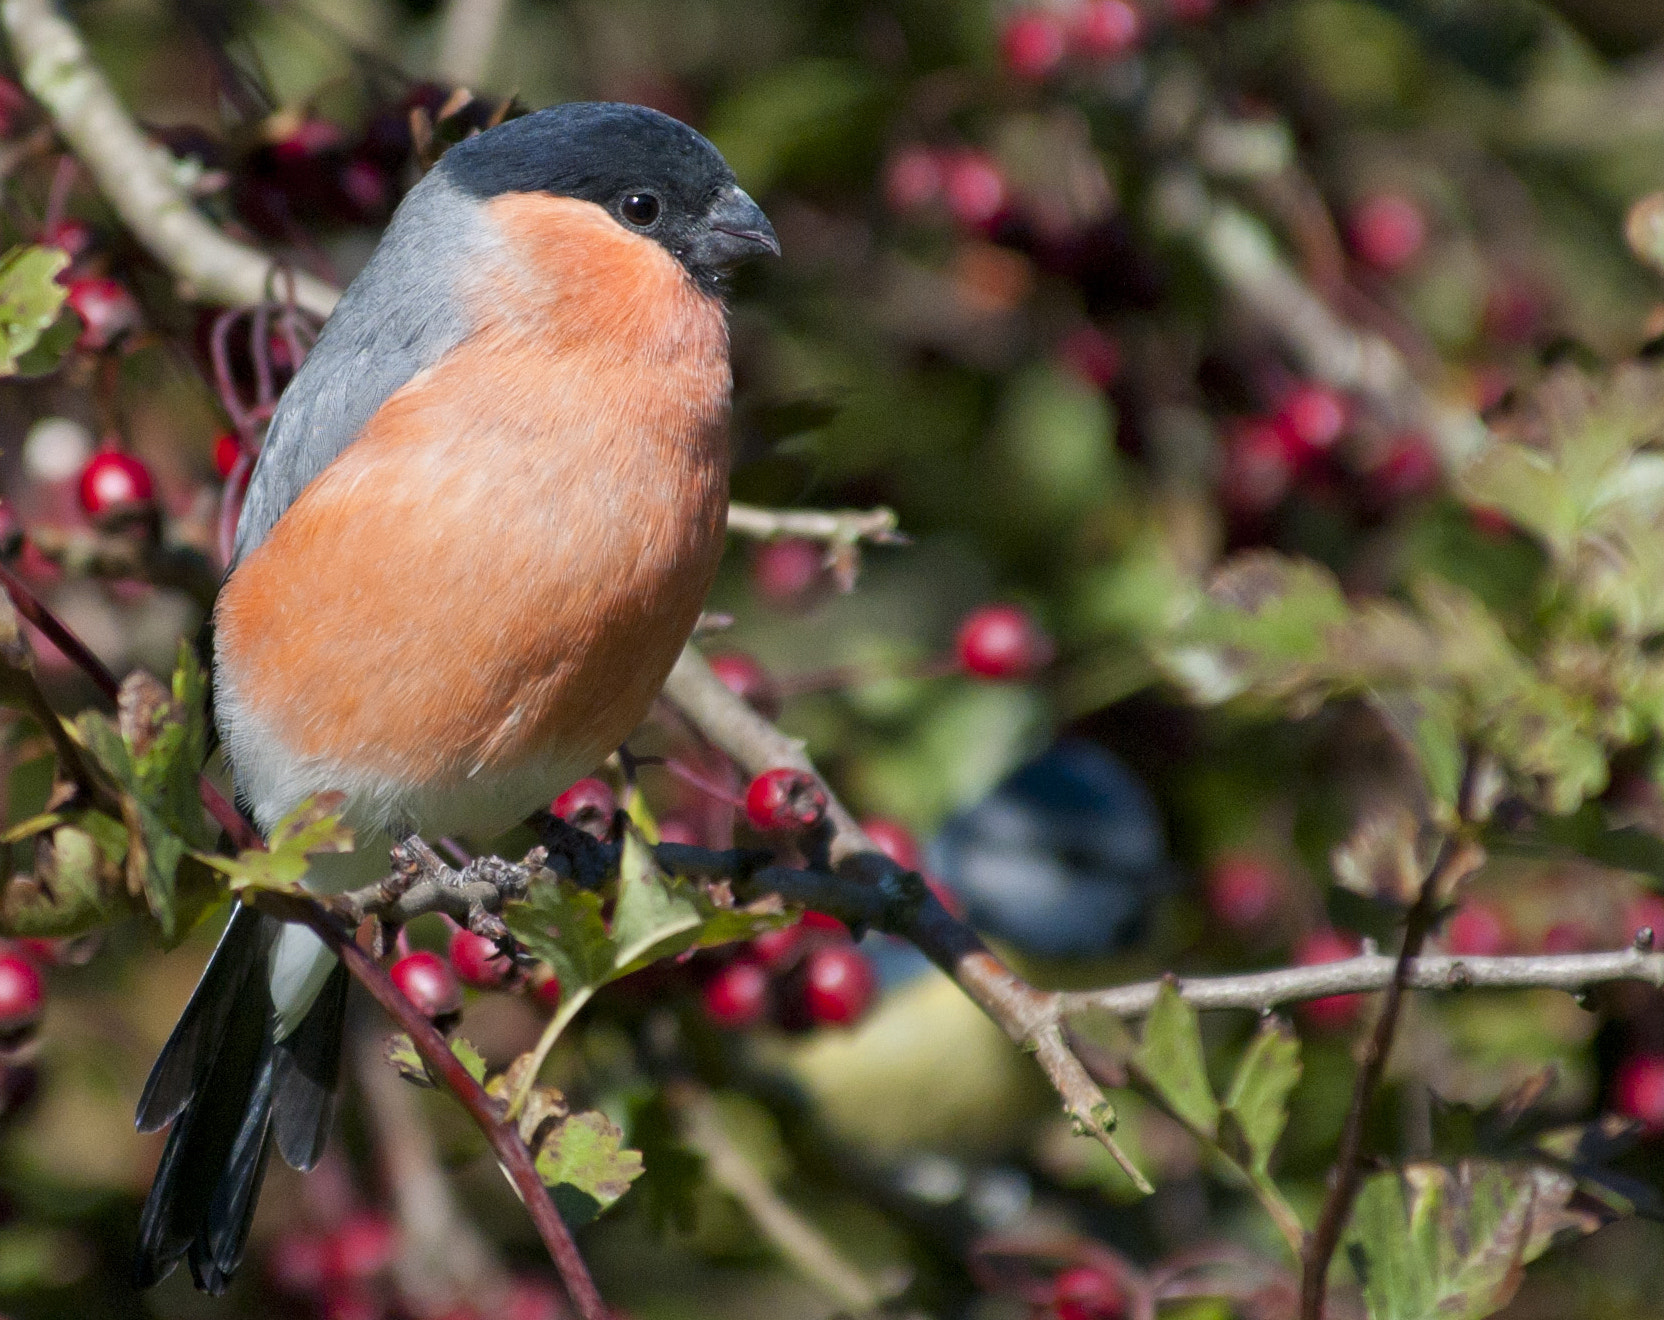 Photograph Bullfinch in the Berries by Chrissy Stone on 500px